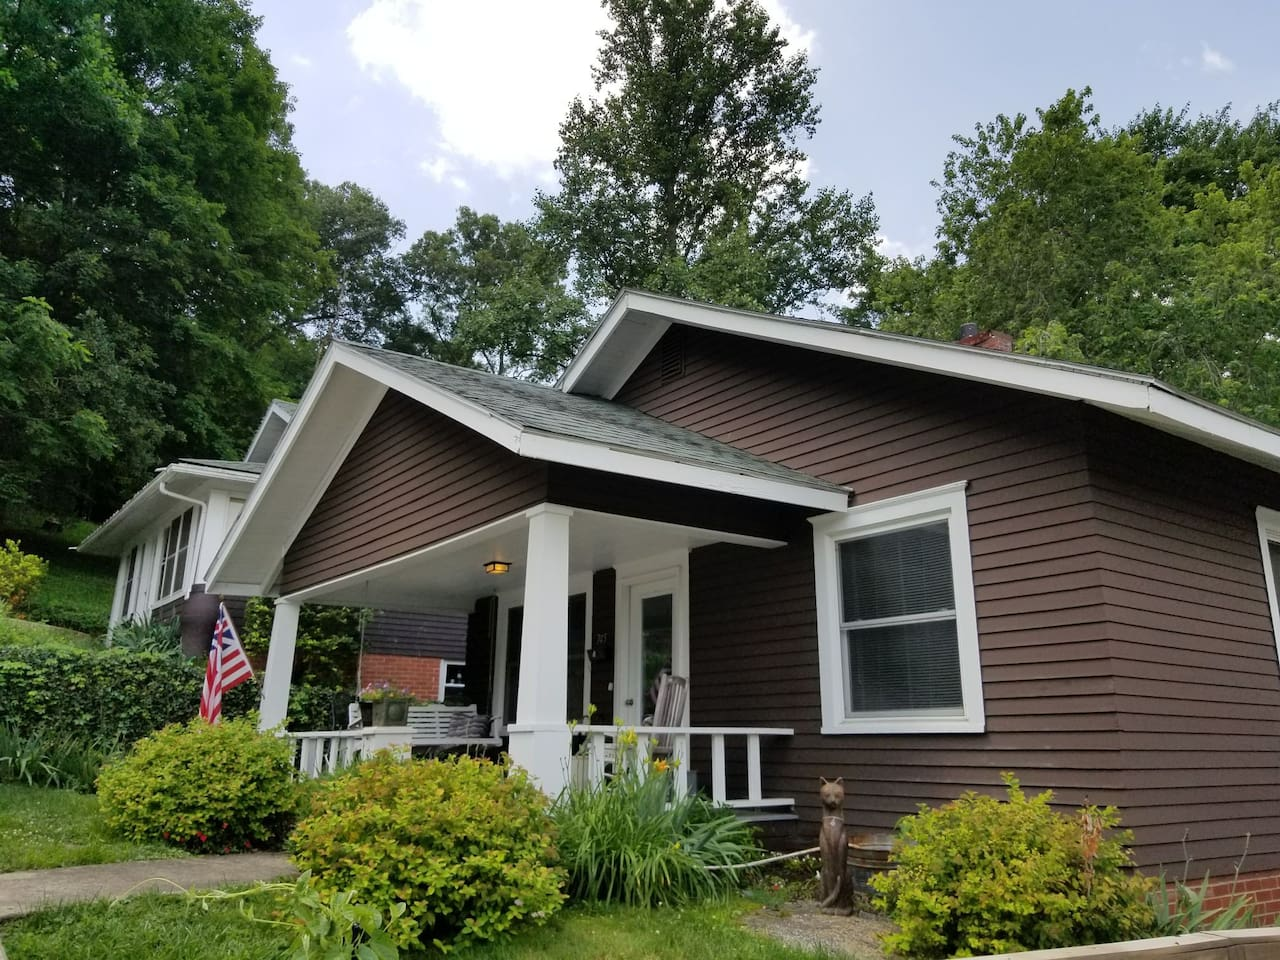 Welcome to our Craftsman Bungalow!